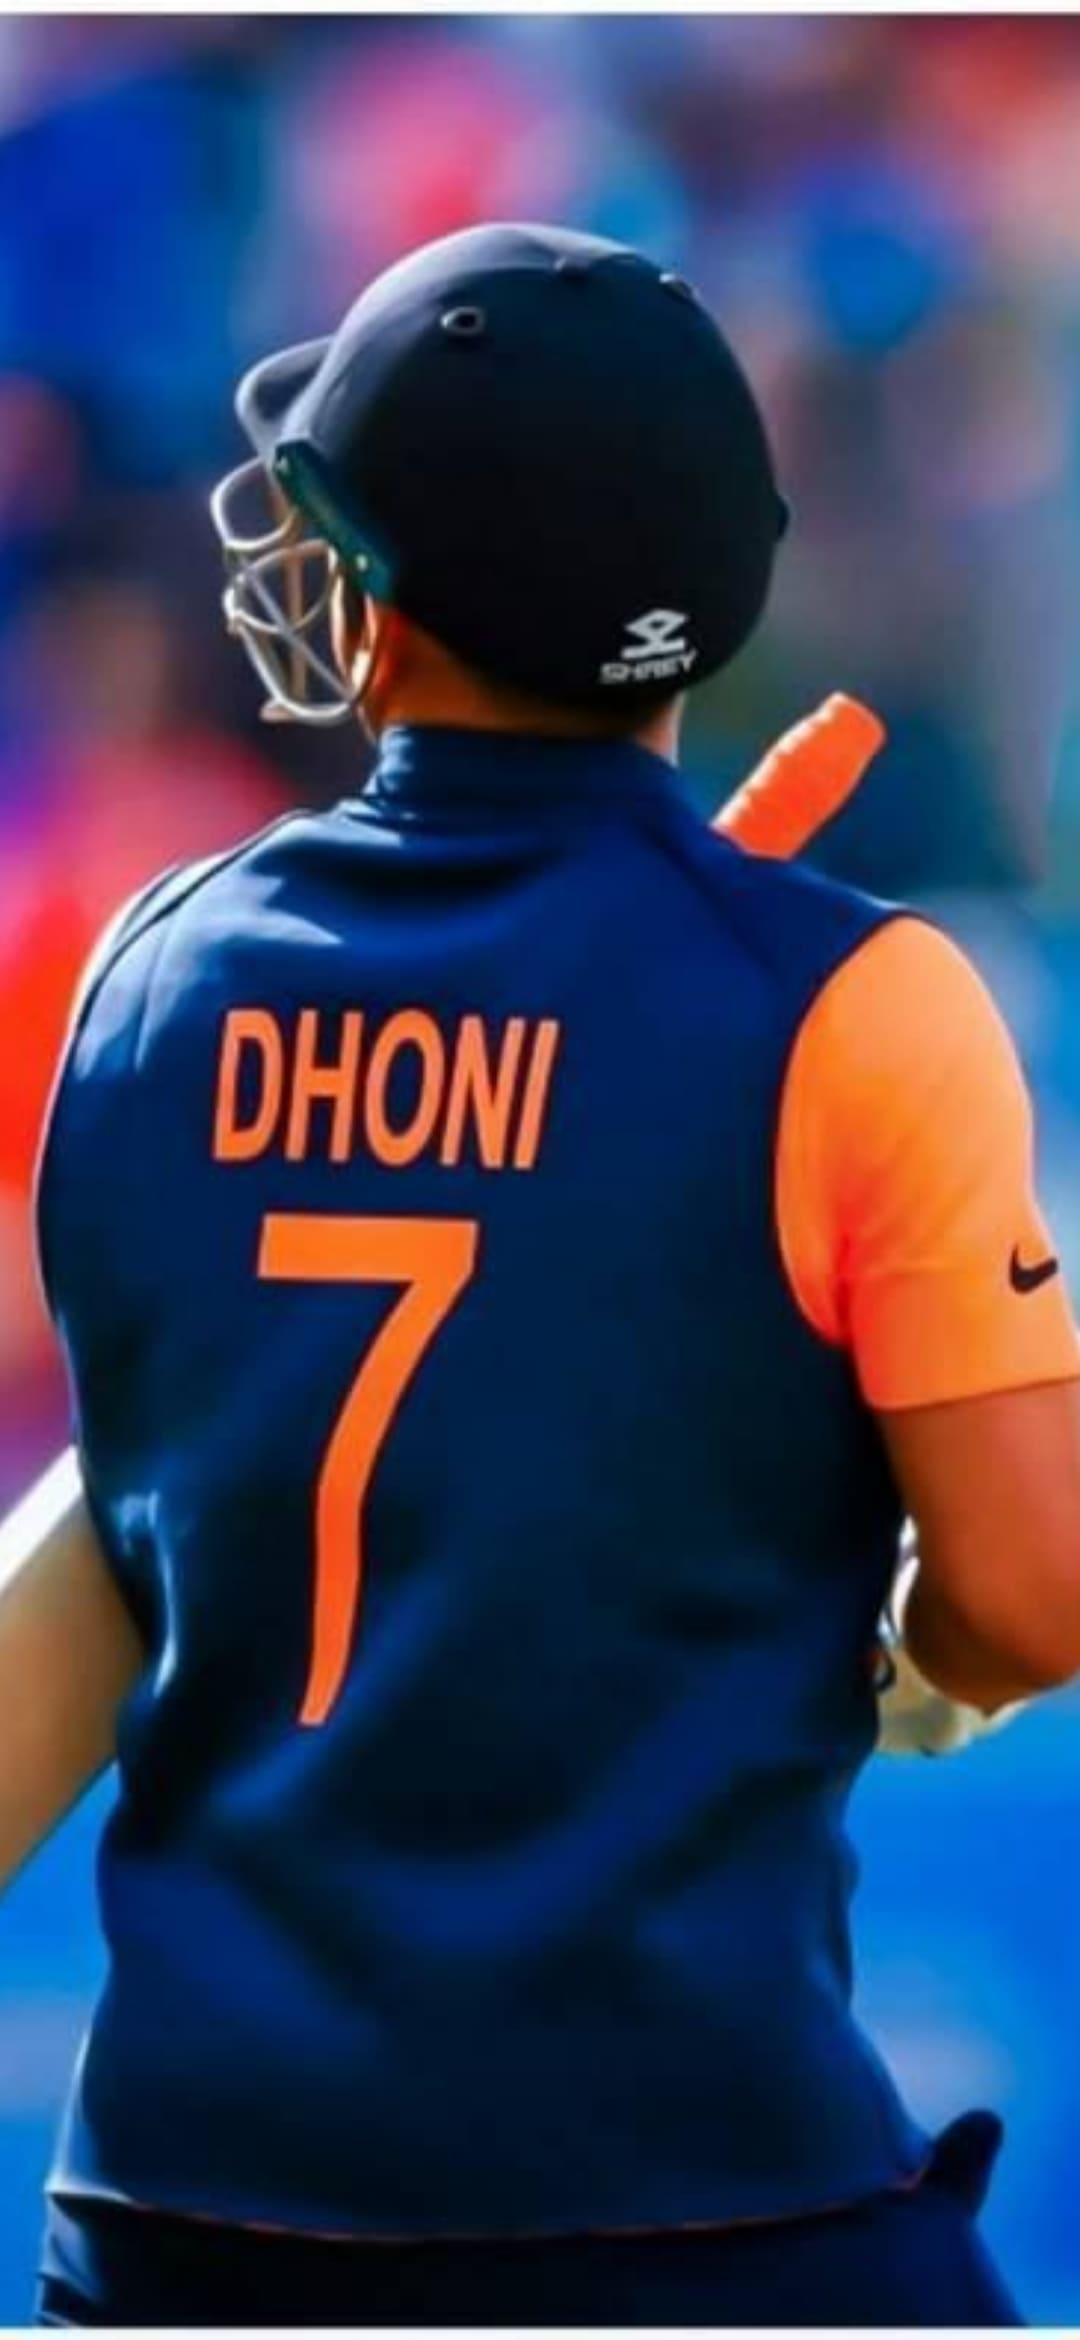 Dhoni 7 Wallpapers Wallpaper Cave